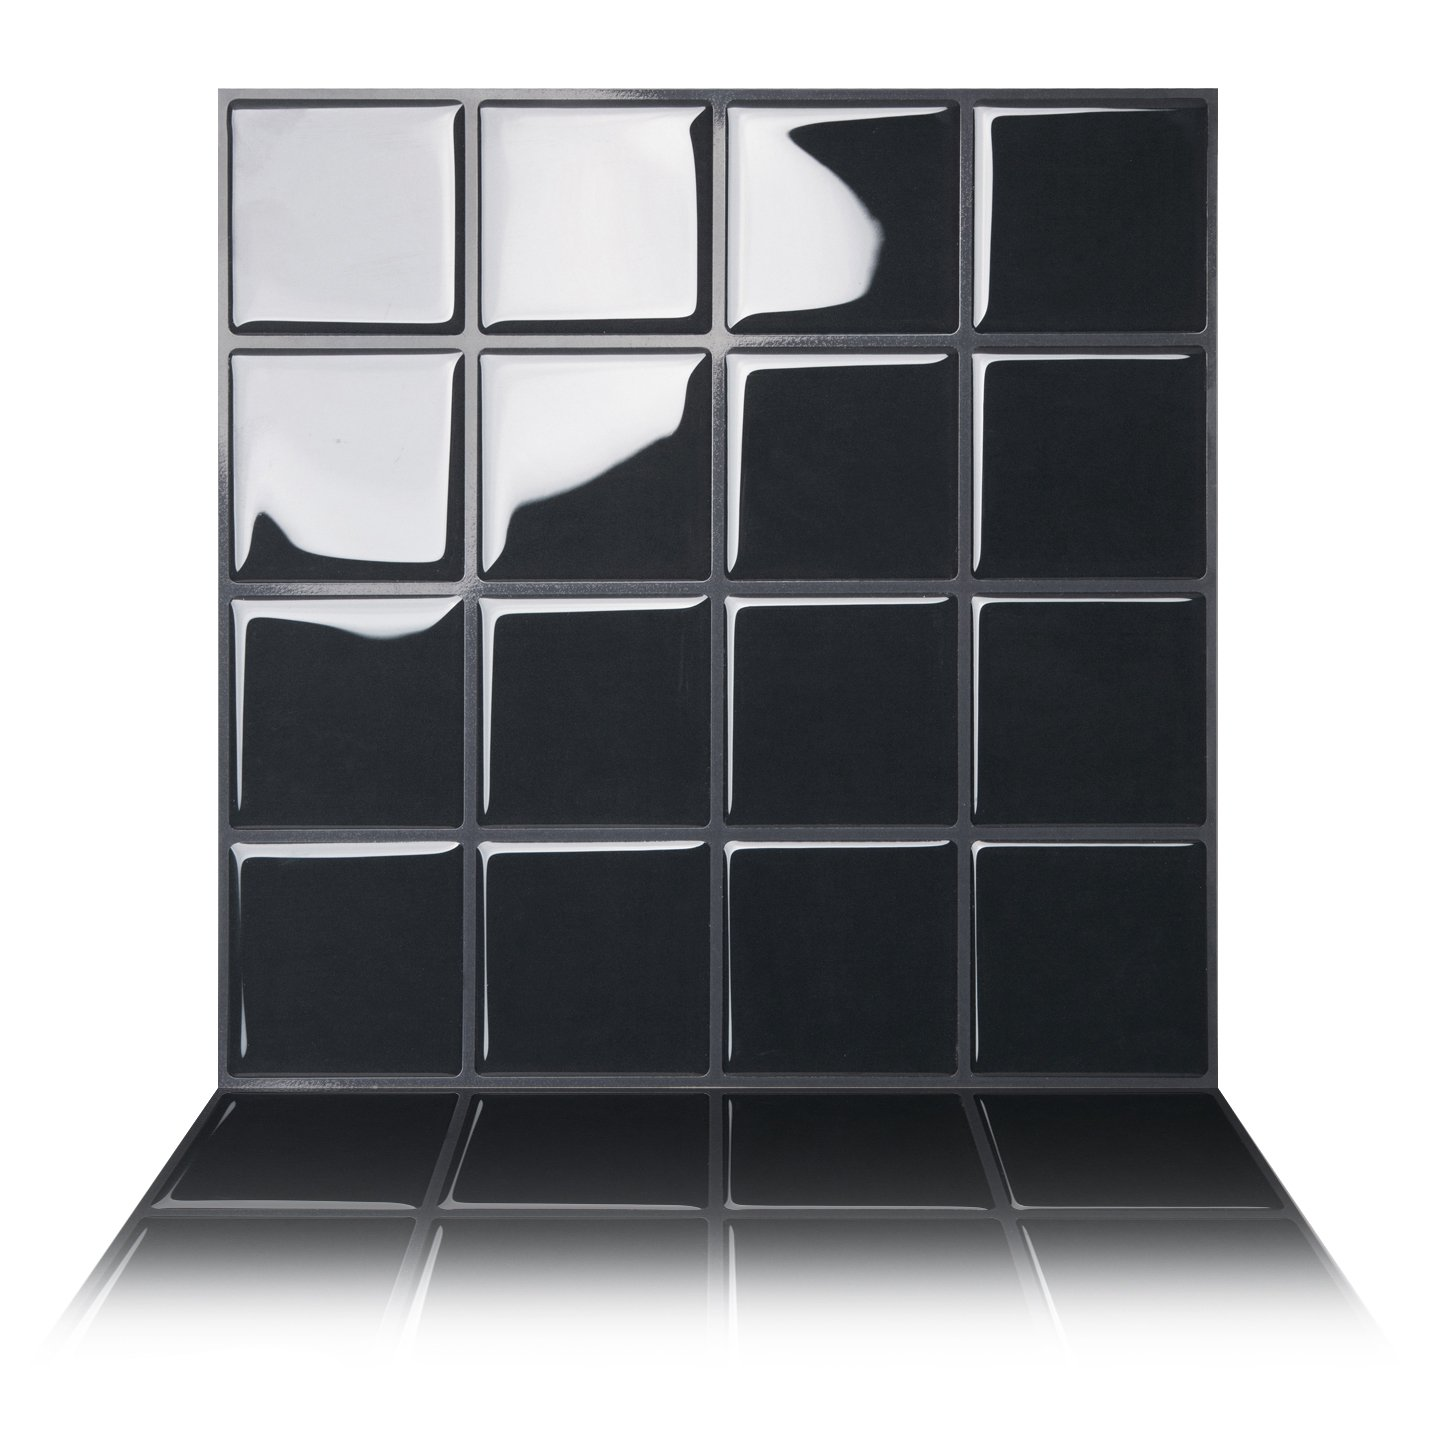 5 Premium Anti-mold Peel and Stick Wall Tiles in Big Square Black Tic Tac Tiles/®